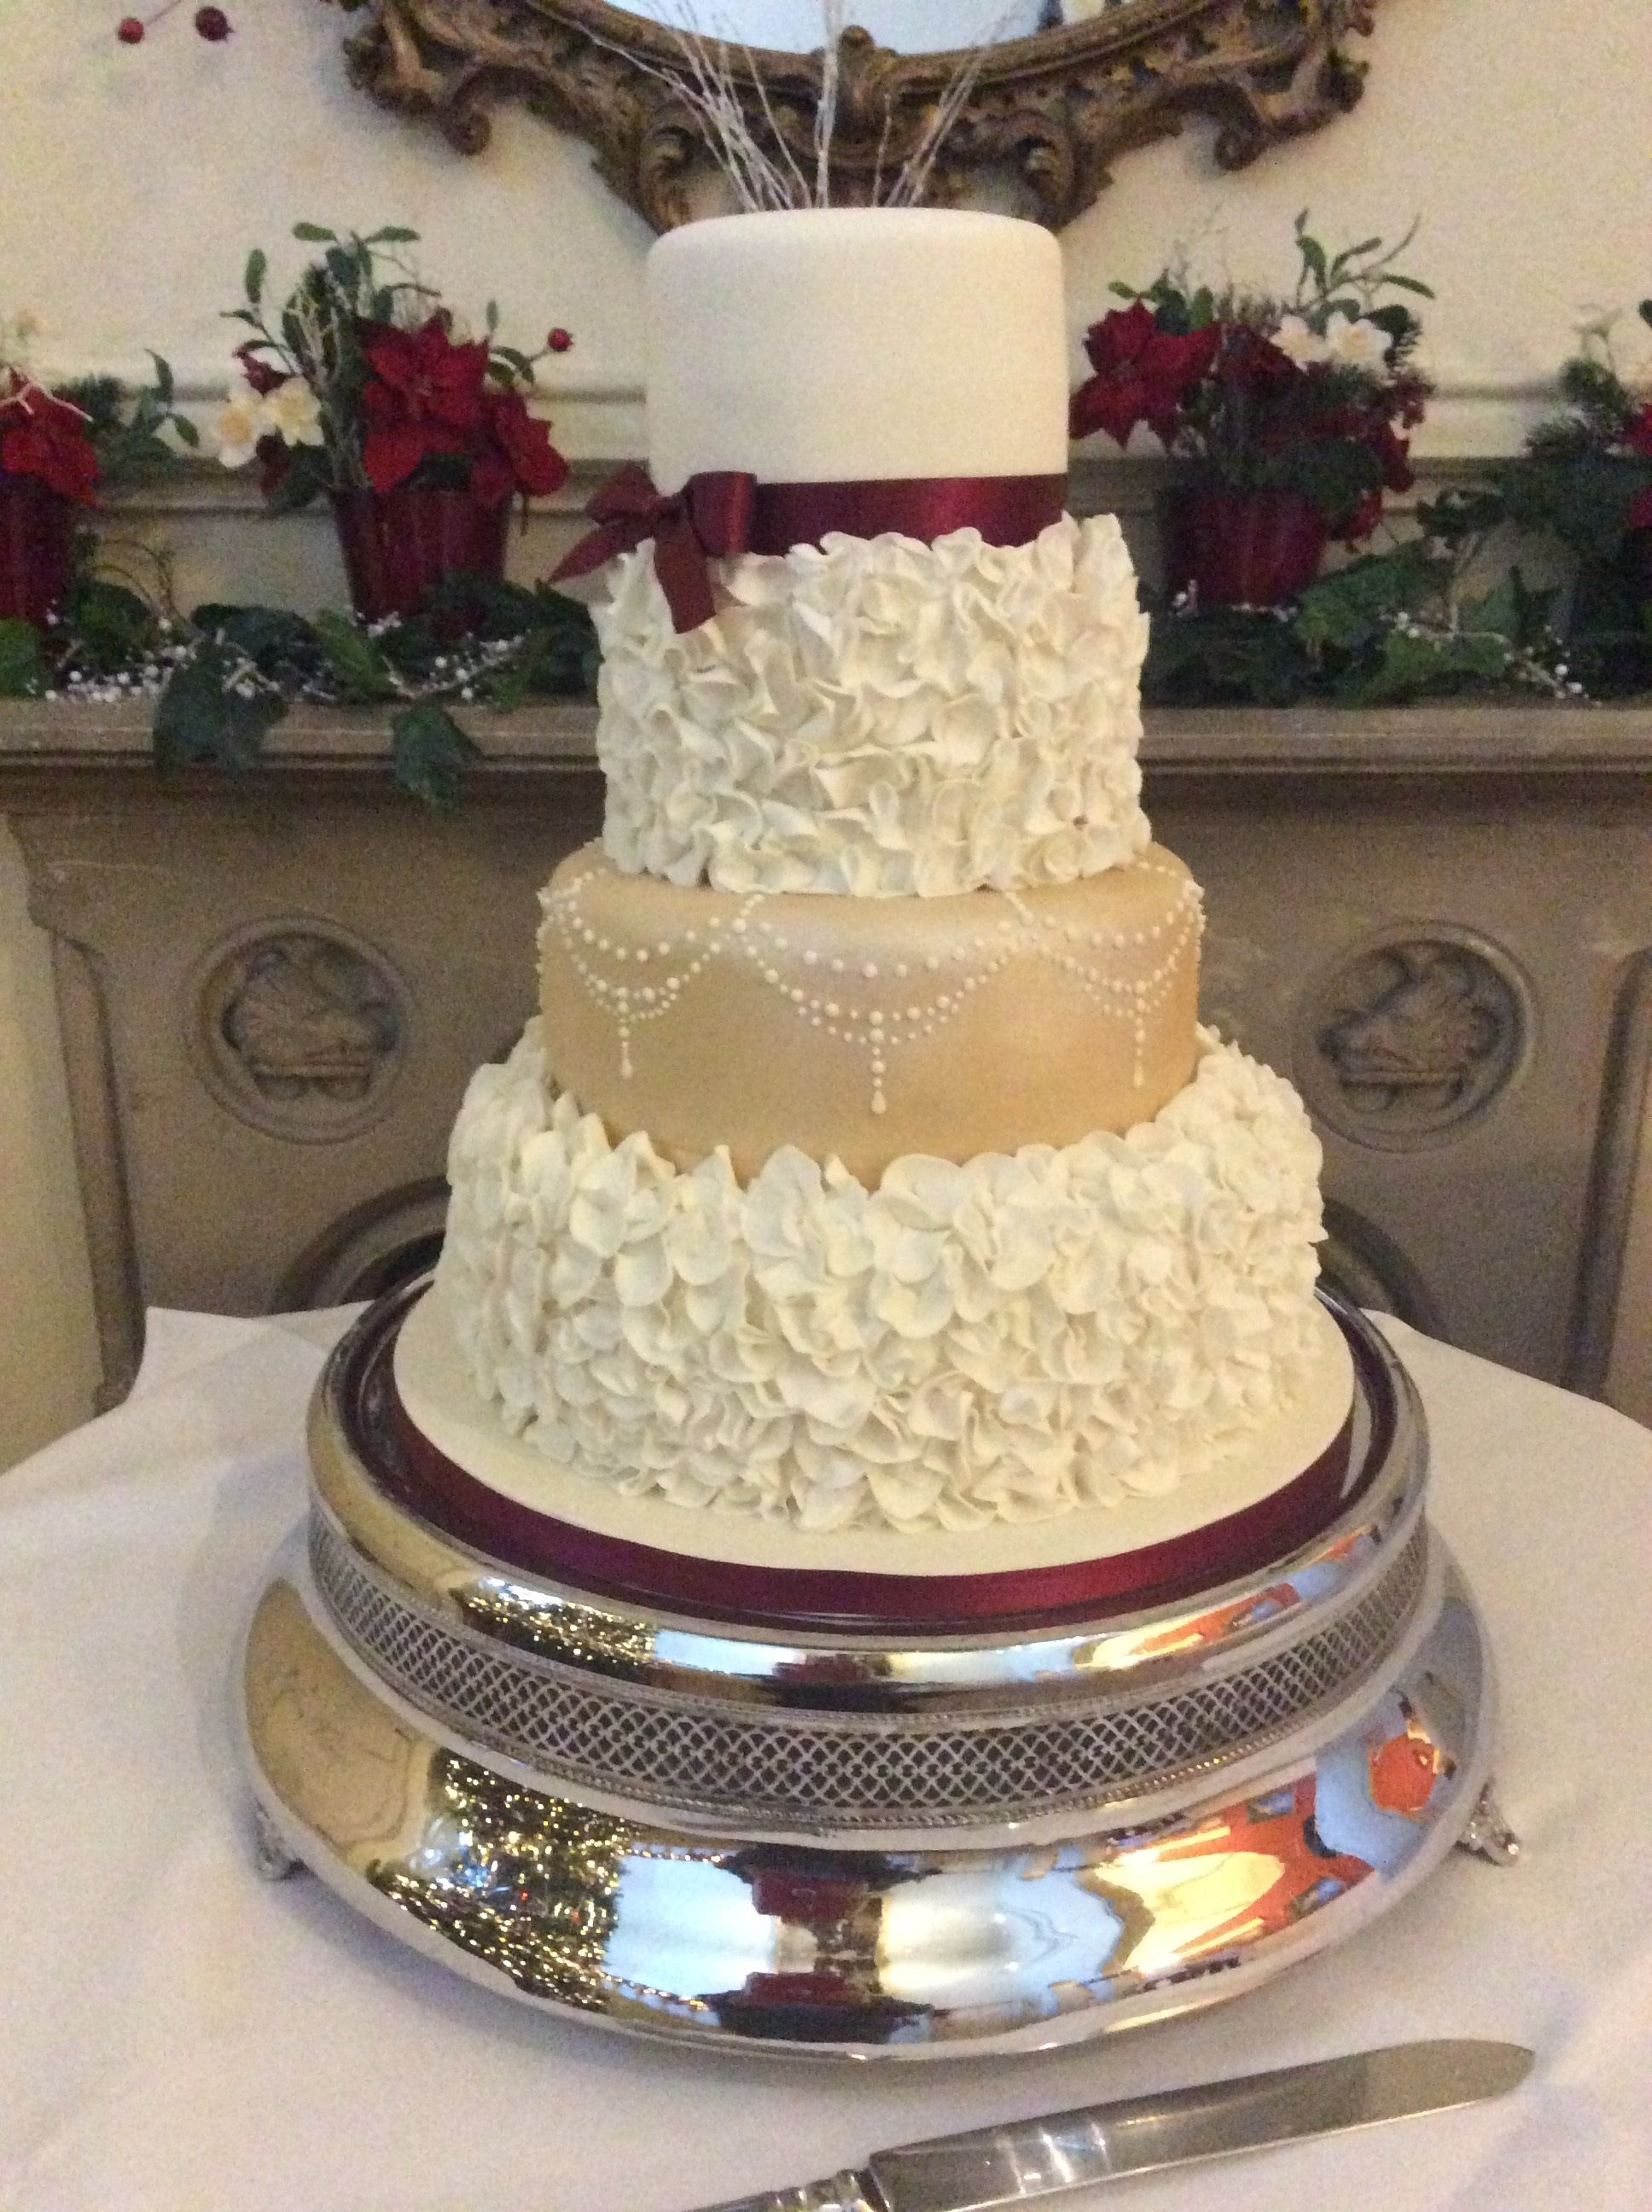 Ruffles December Wedding Cake In Ivory Pale Gold And Burgundy With